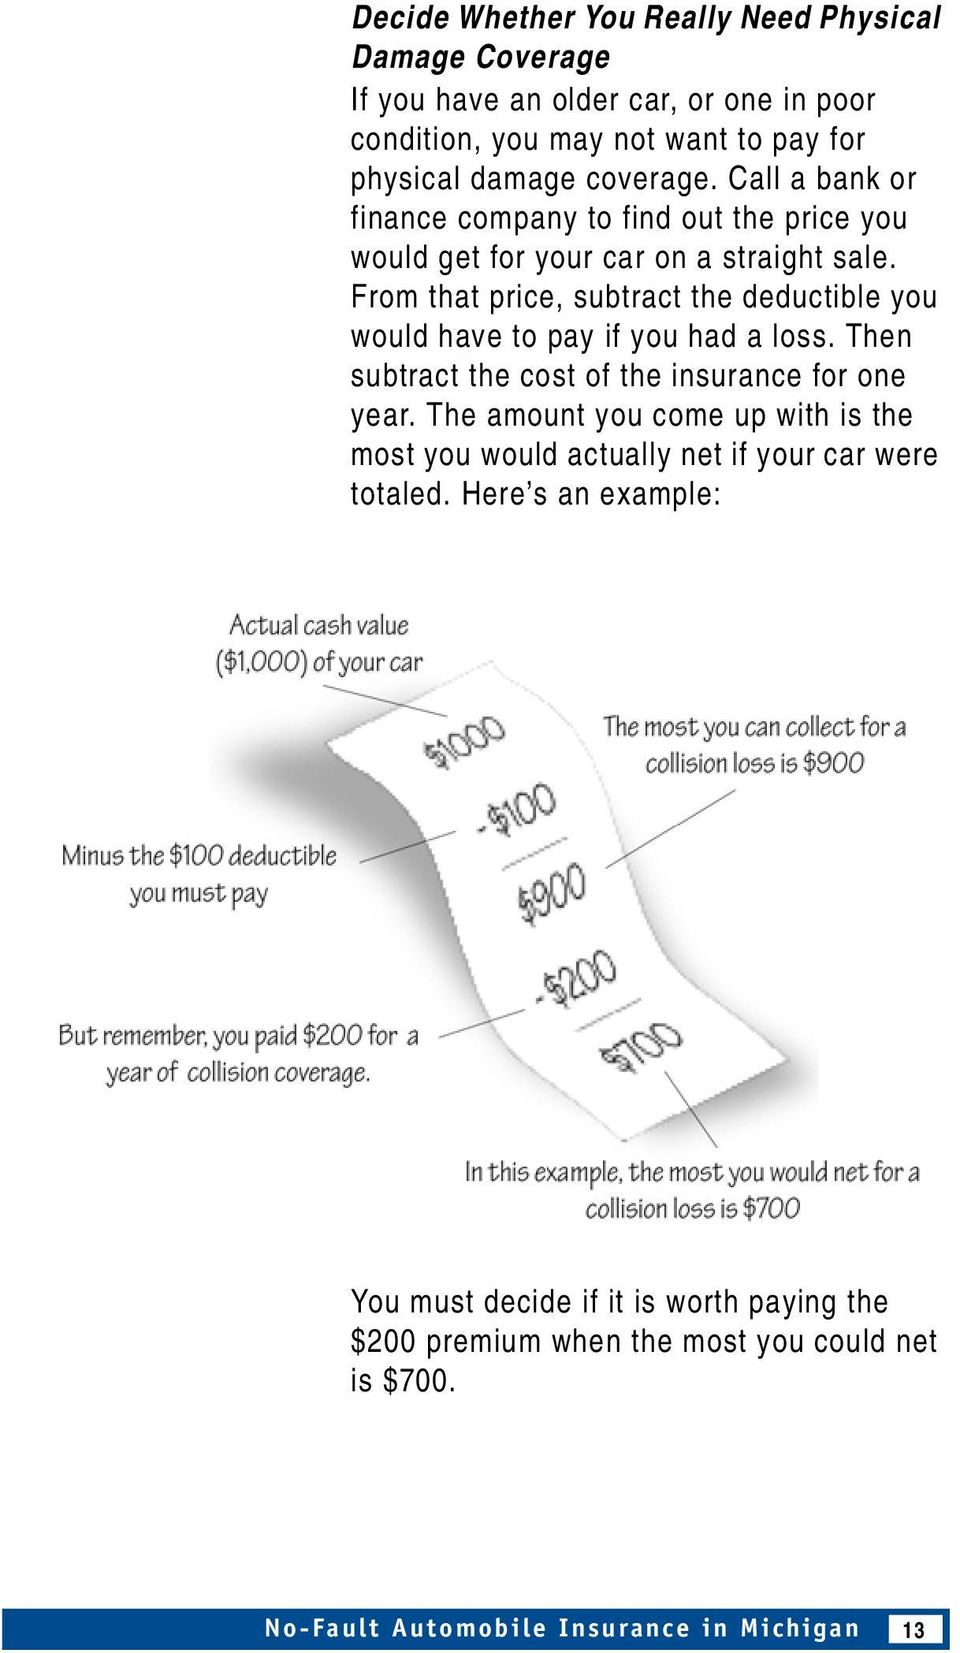 From that price, subtract the deductible you would have to pay if you had a loss. Then subtract the cost of the insurance for one year.